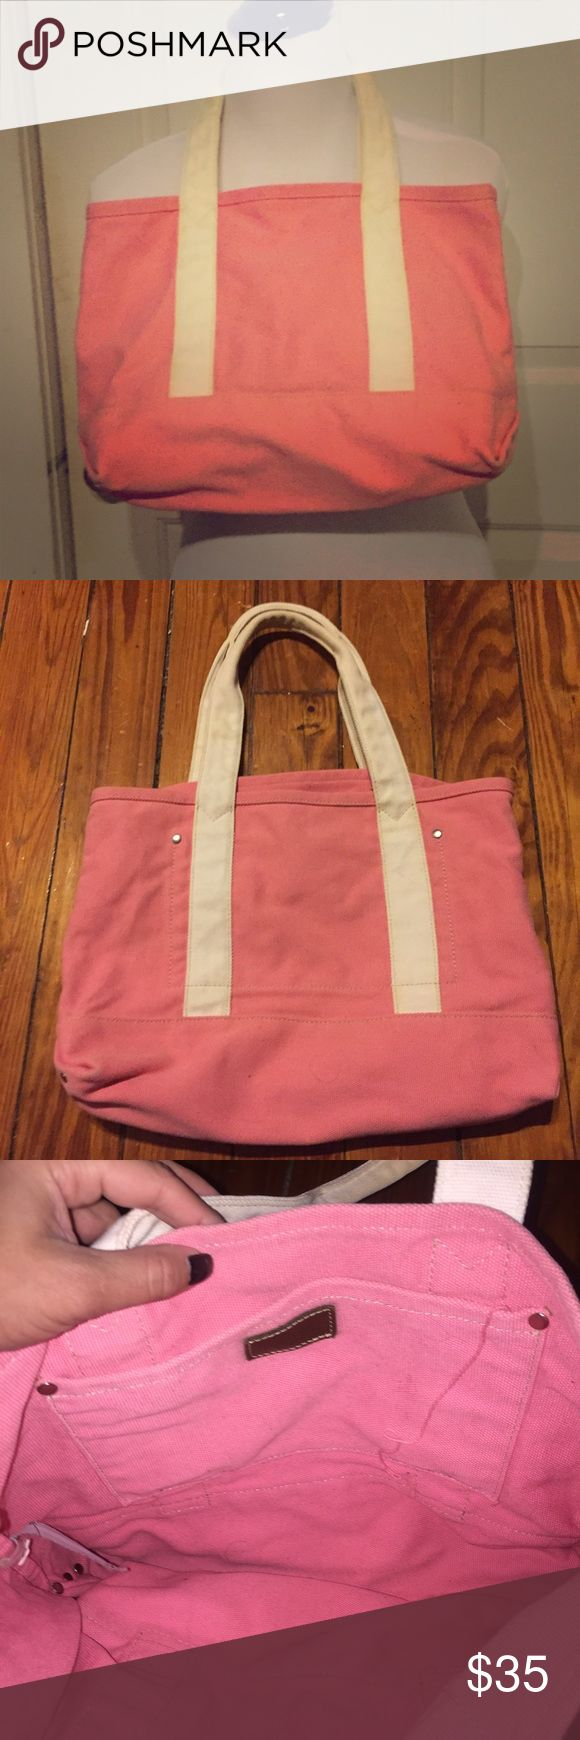 Pink & White J. Crew Tote Bag Vintage Pink & White J. Crew Tote Bag Vintage. In excellent condition. Very Sturdy. Has studded corners on the bottom edges. No flaws observed. Recently cleaned. Measurements to come!! Bundle and Save $$$ J. Crew Bags Totes